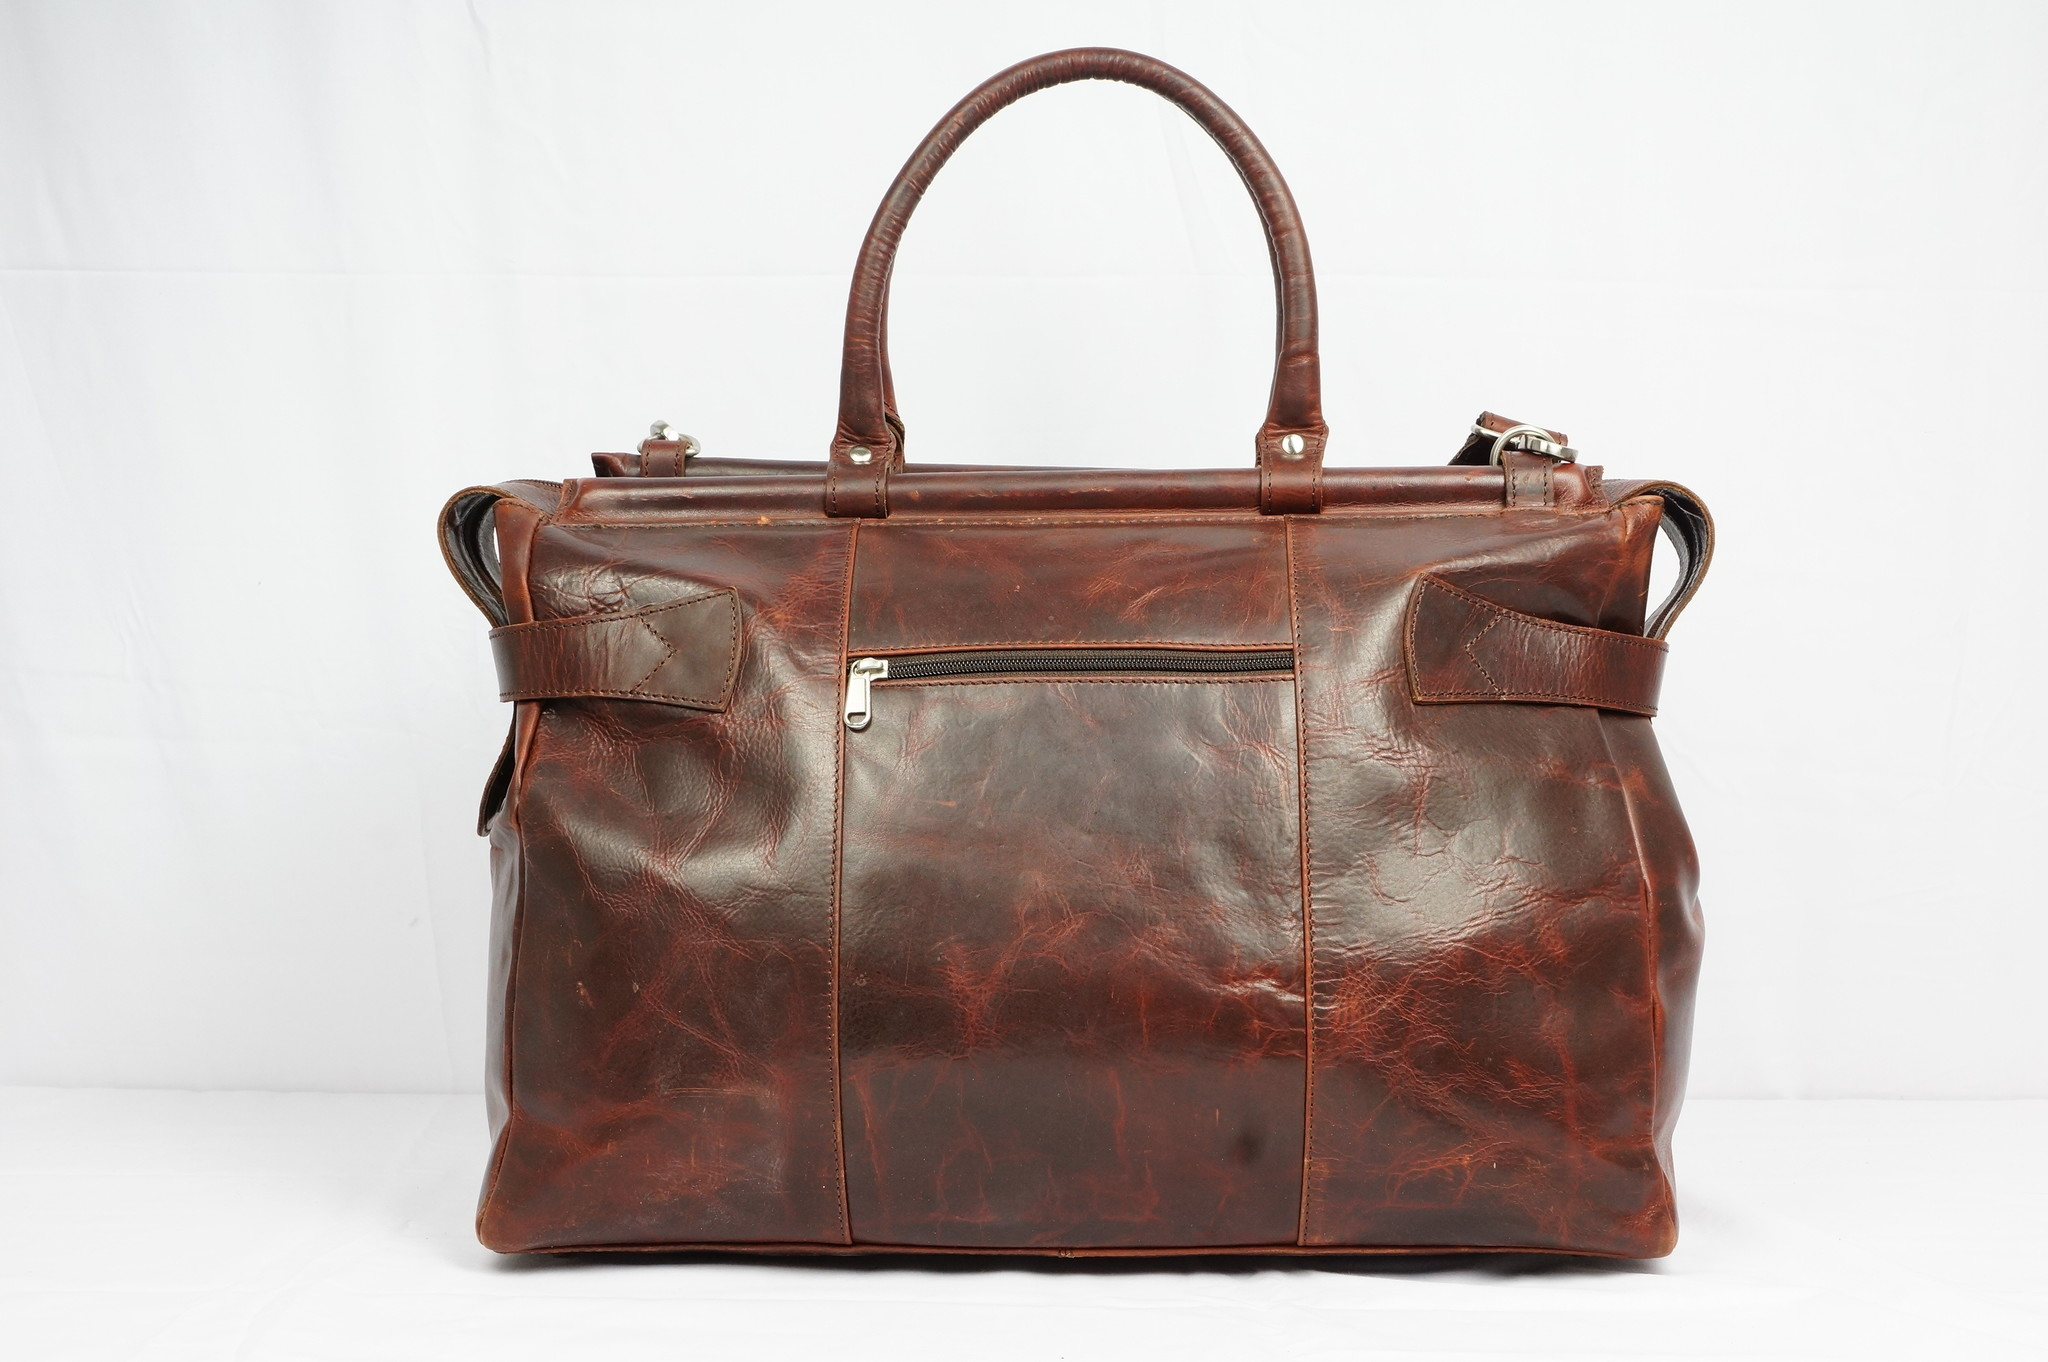 Arpello Old School travel bag